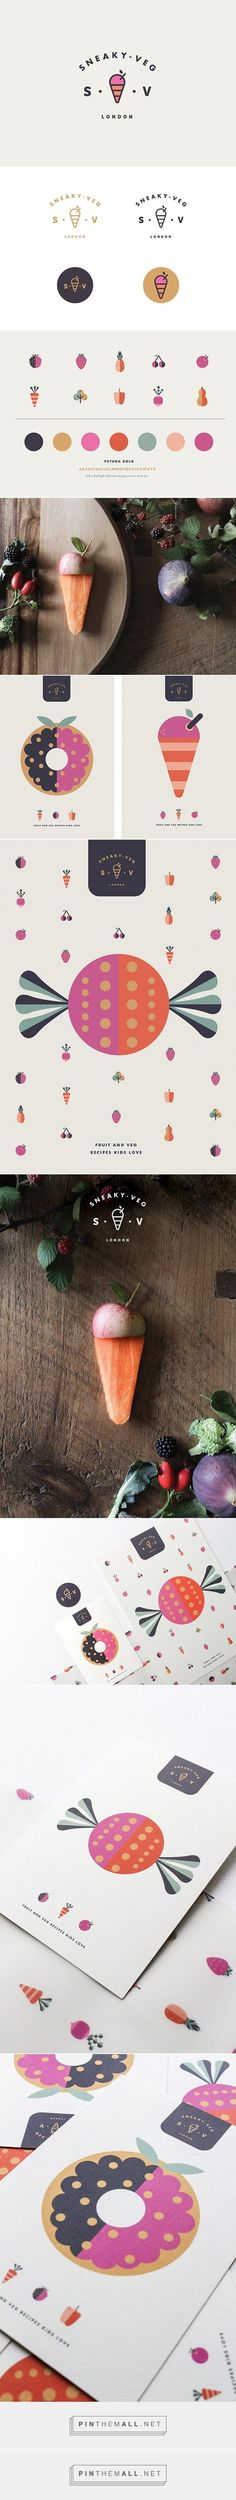 Sneaky Veg Branding by Vicki Turner | Fivestar Branding – Design and Branding Agency & Inspiration Gallery